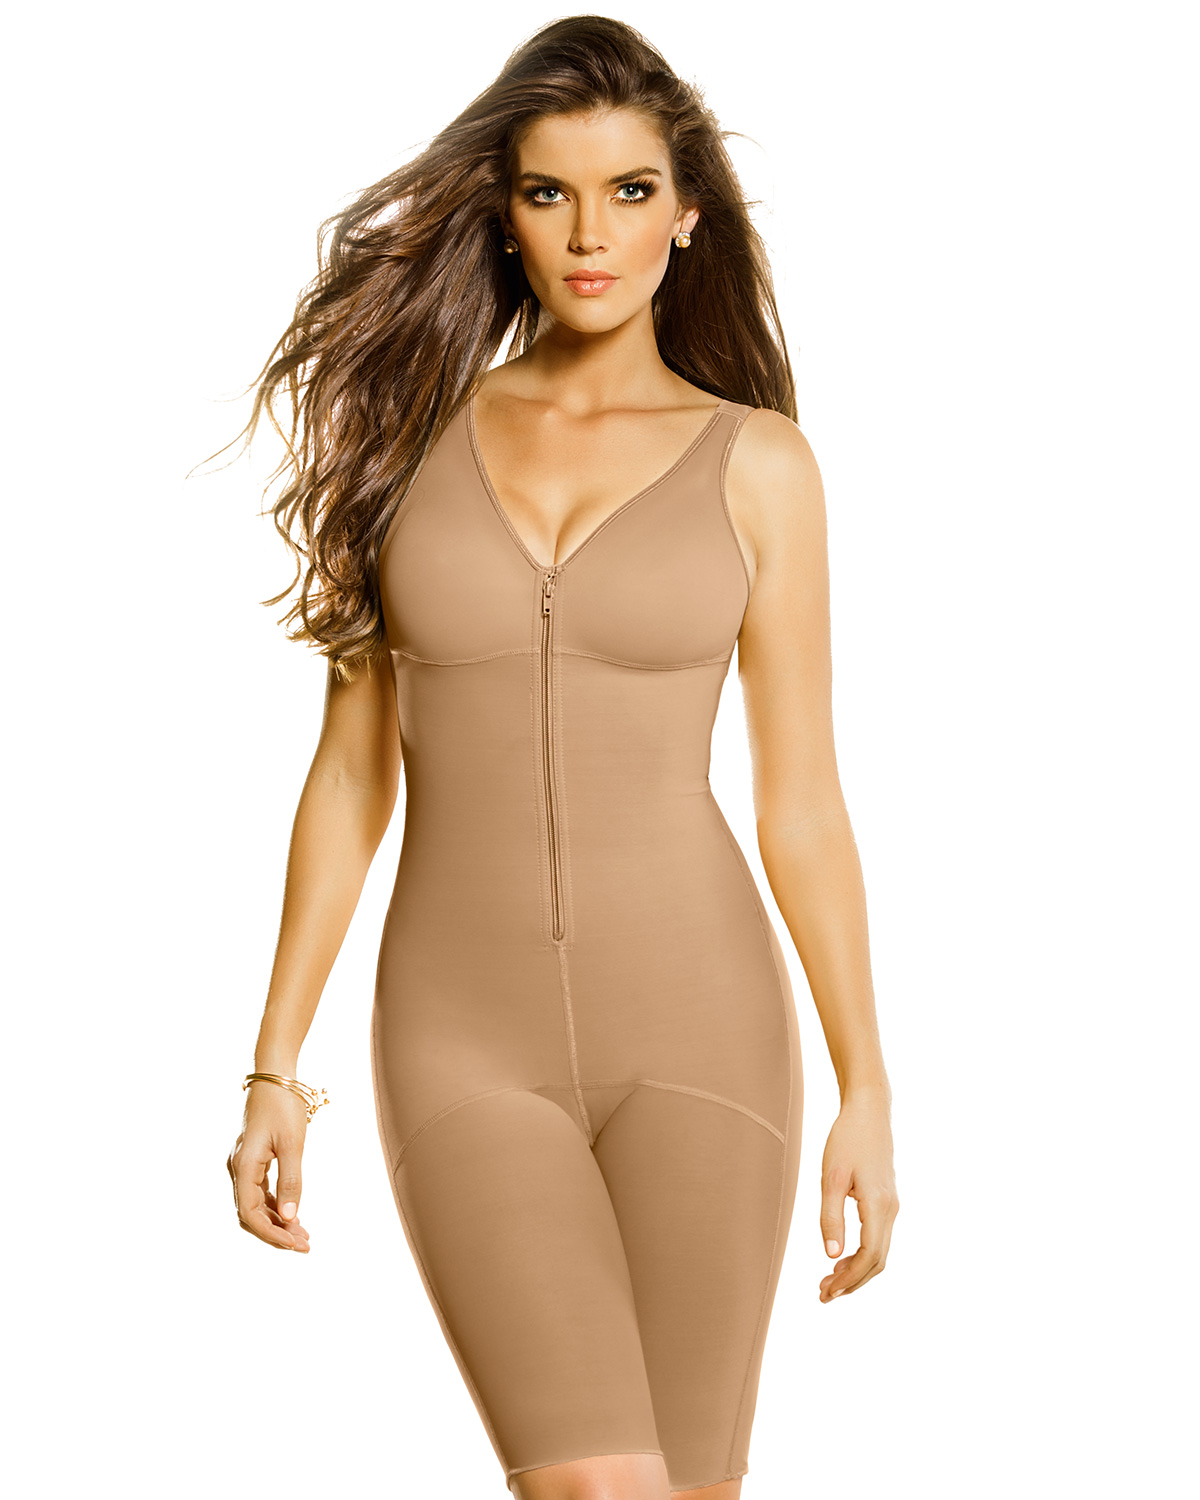 Leonisa Full Bodysuite Shaper